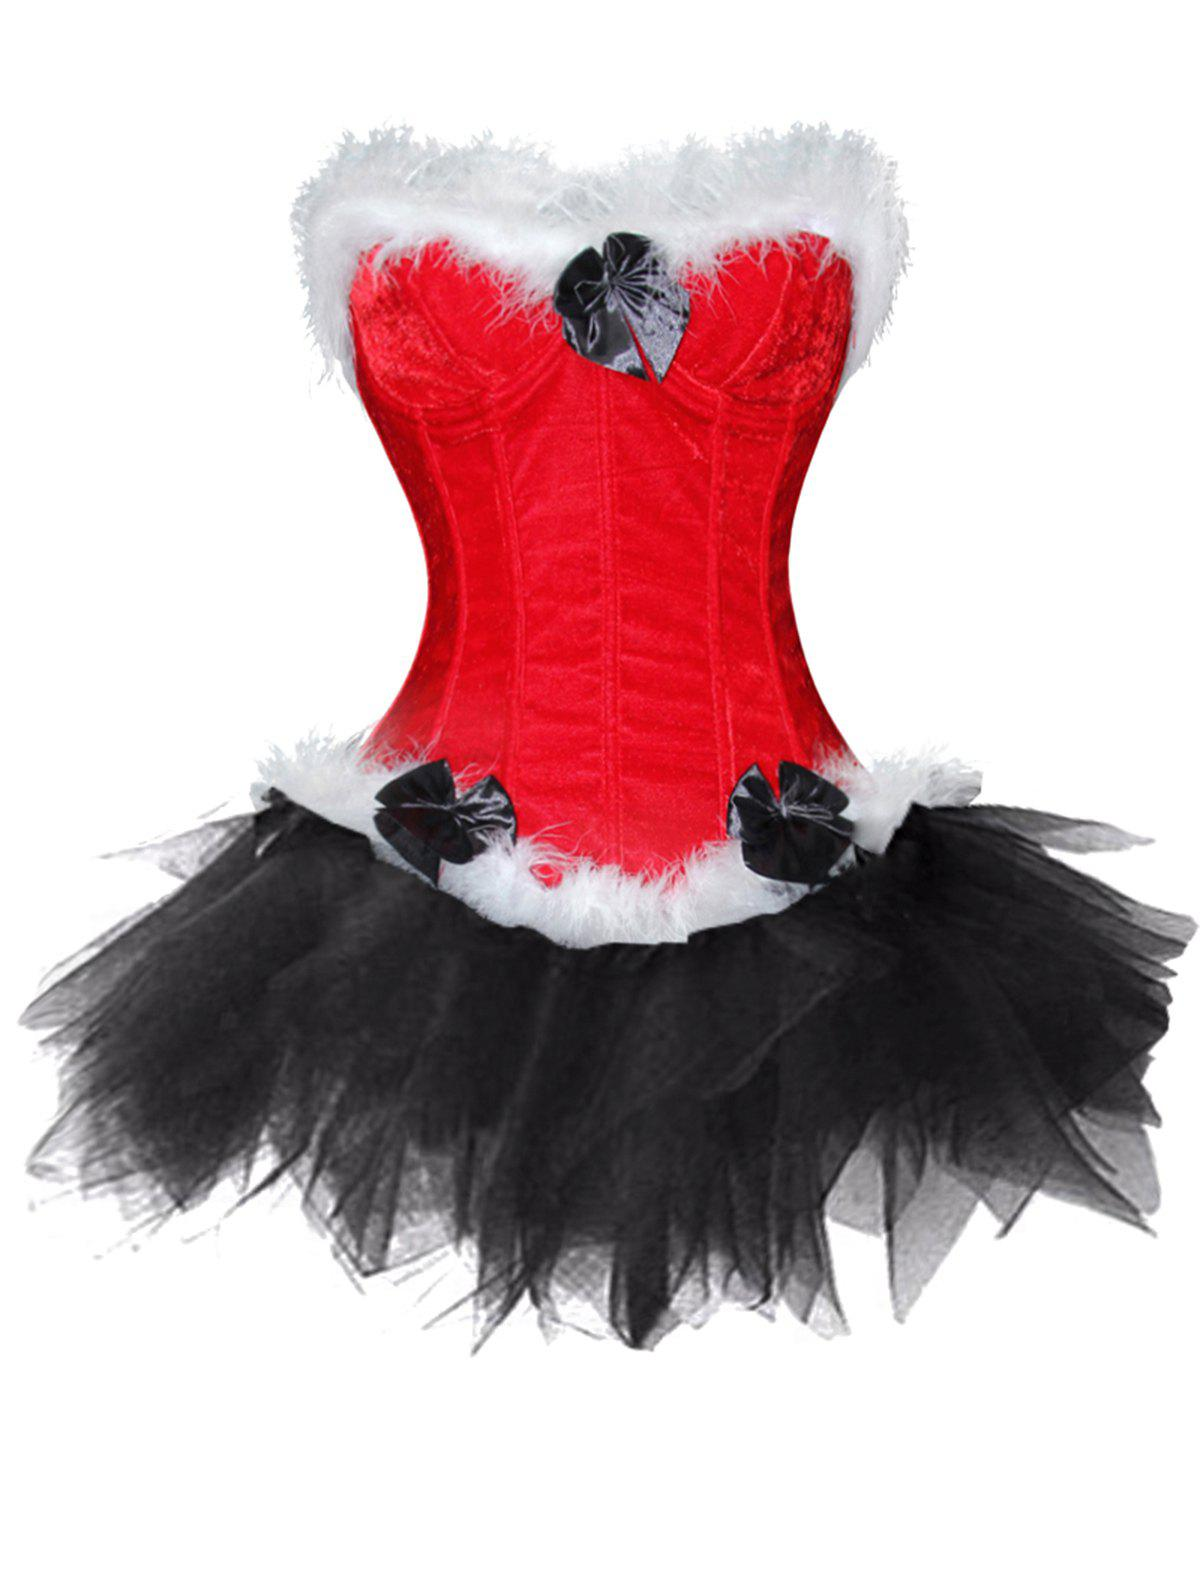 Lingerie Christmas Santa Claus Two Piece Corset Dress - BLACK M